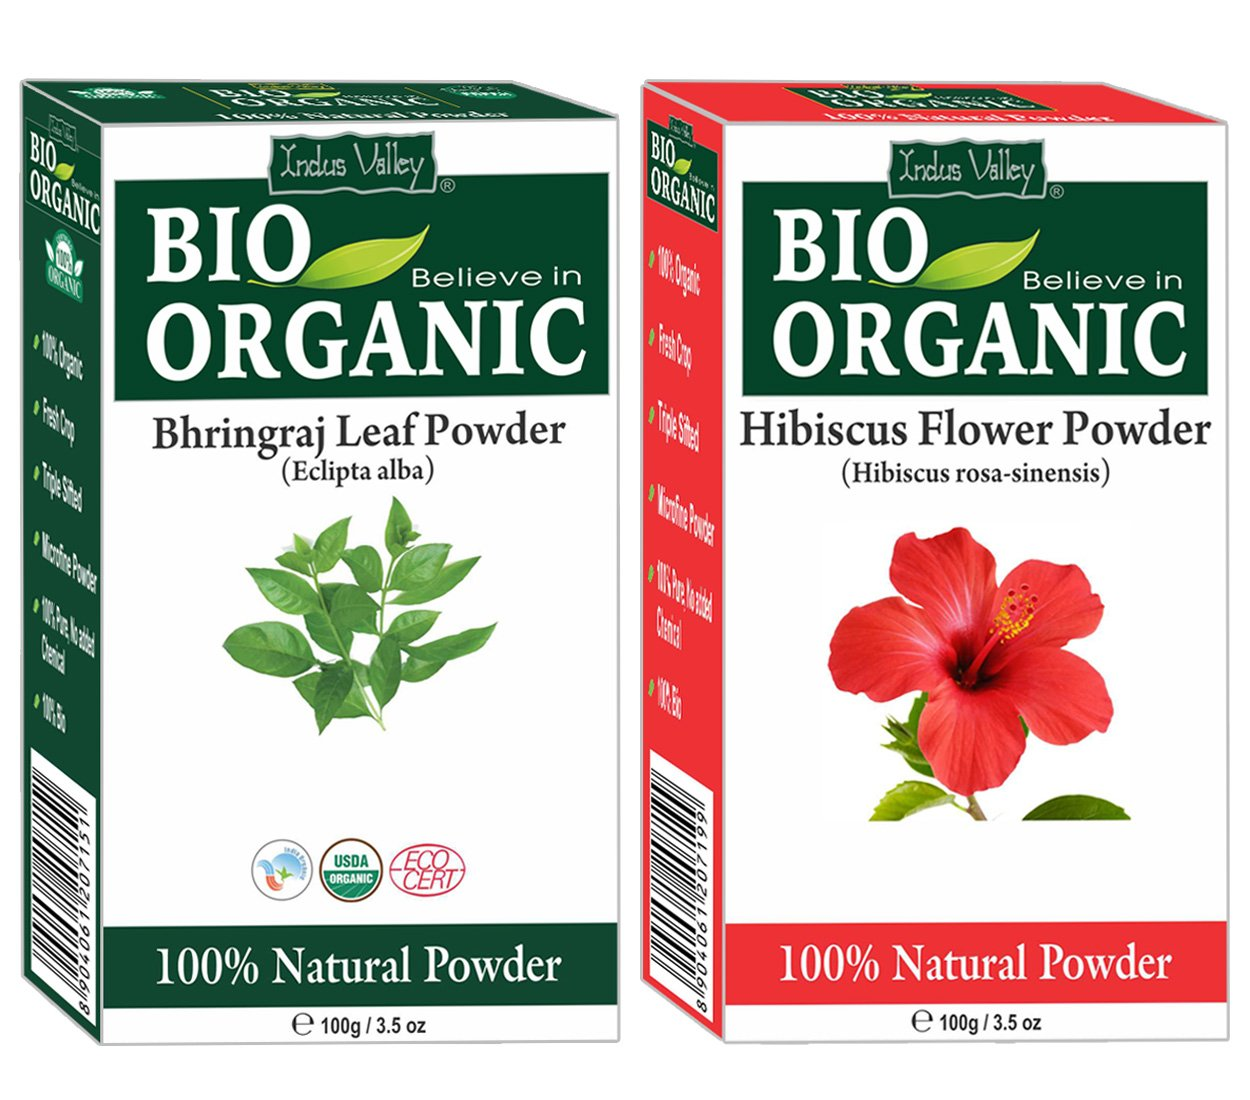 Buy indus valley bhringraj leaf powder with hibiscus flower powder buy indus valley bhringraj leaf powder with hibiscus flower powder fdra114 100g pack of 2 online at low prices in india amazon izmirmasajfo